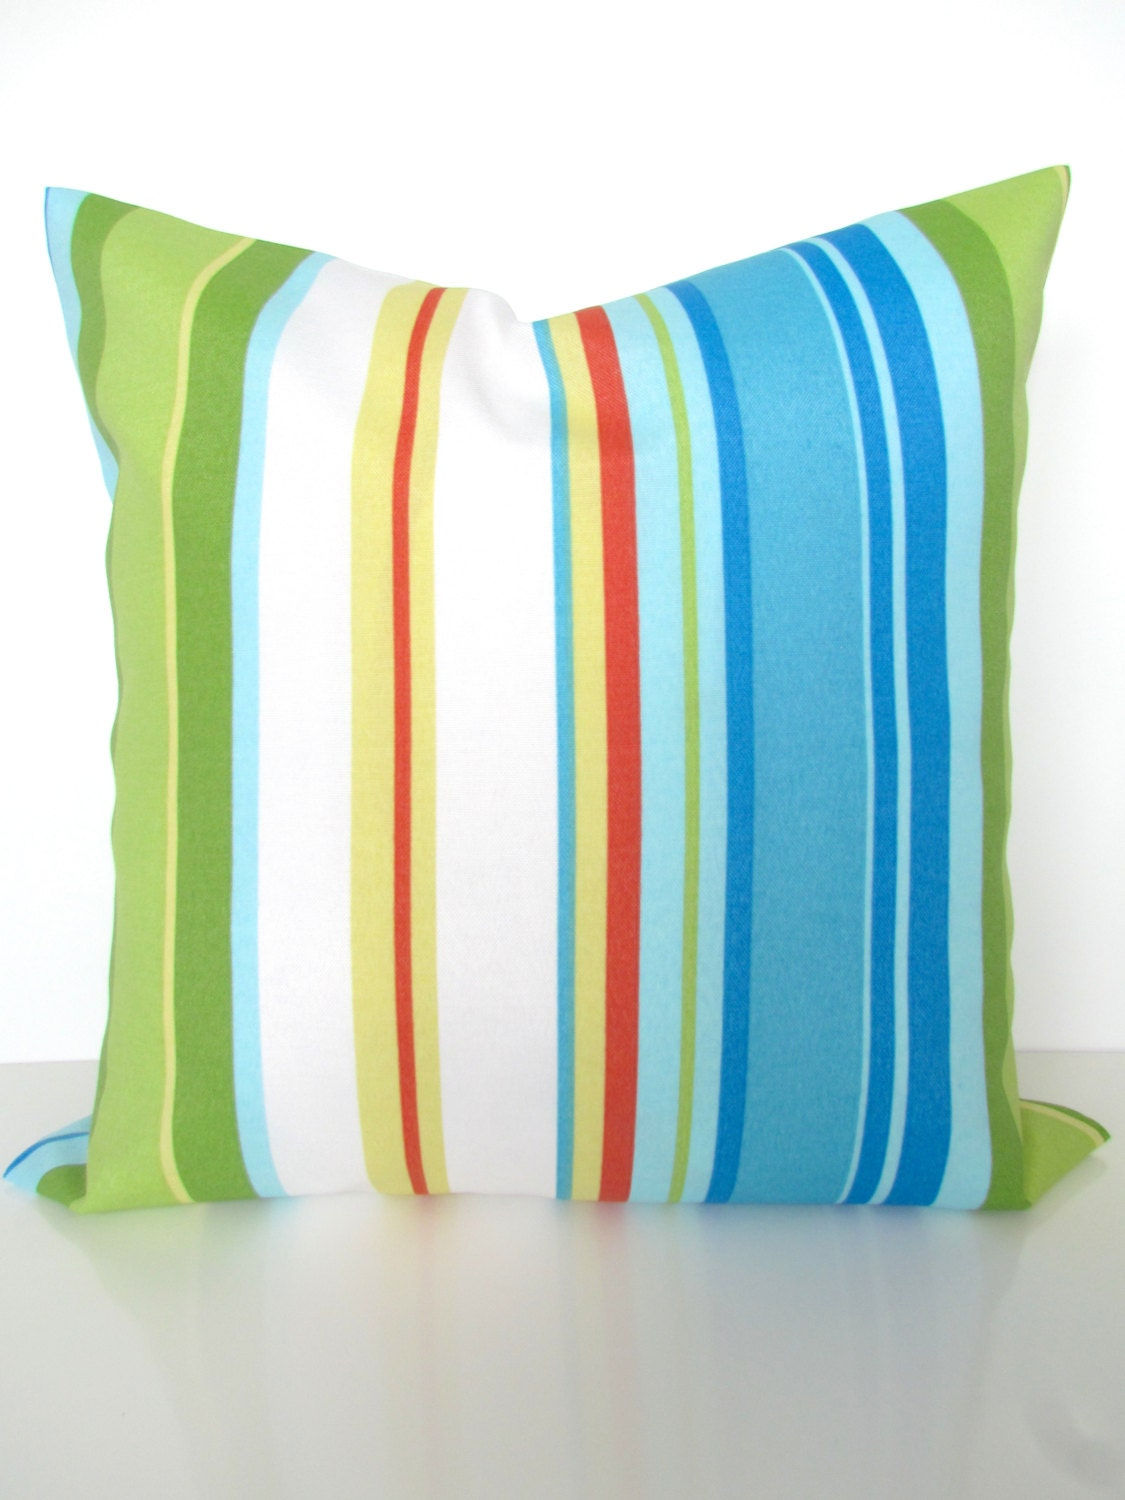 Blue Outdoor Pillows Turquoise Pillow Covers Aqua Outdoor